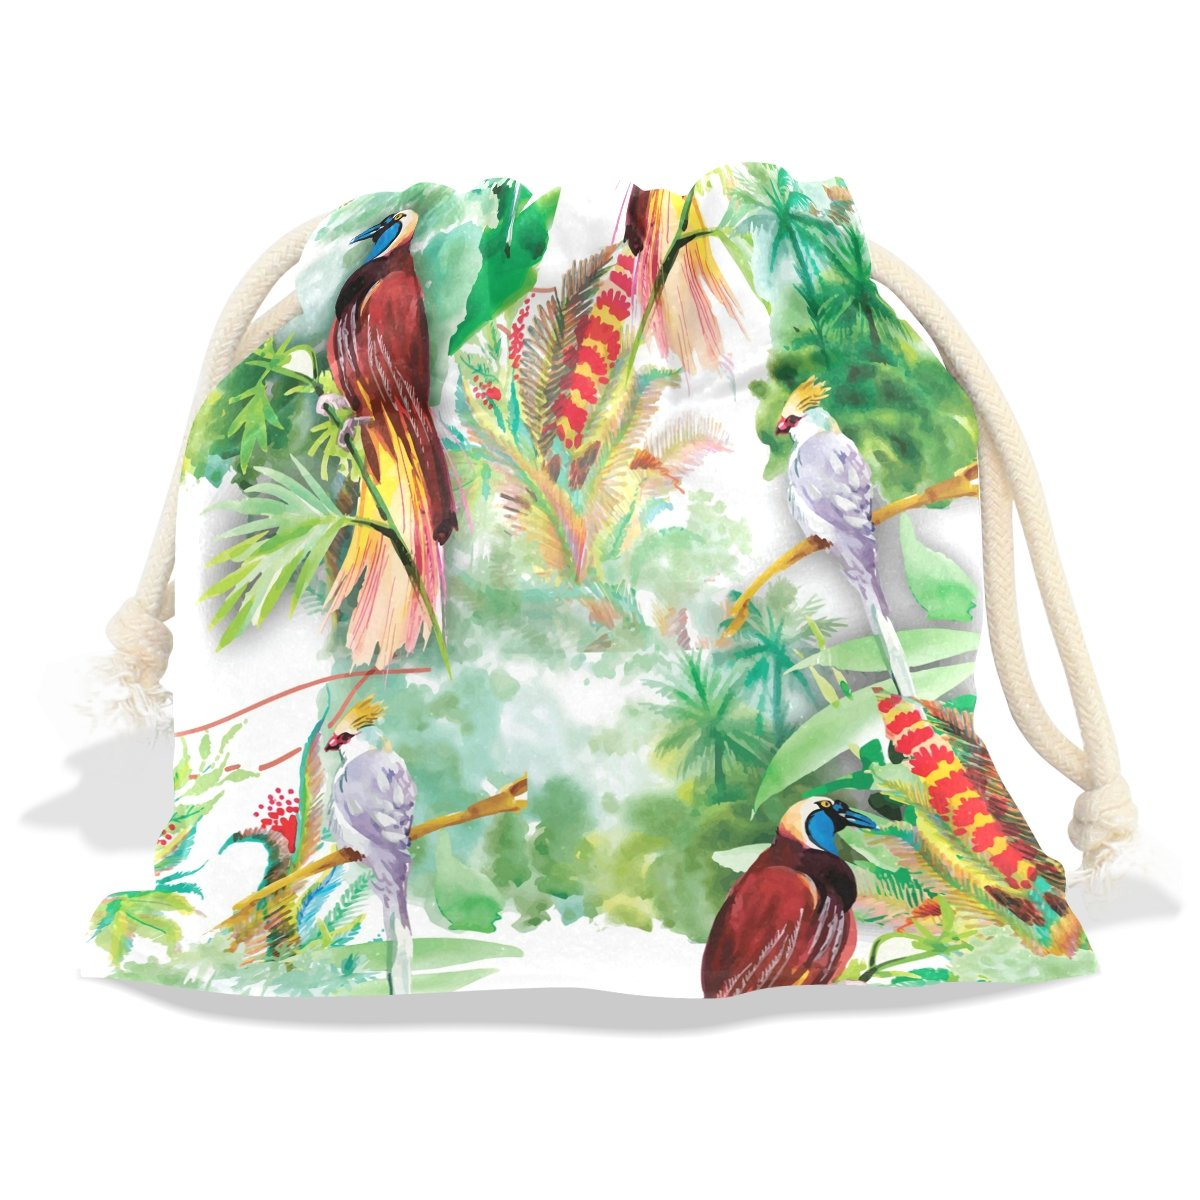 Dragon Sword Watercolor Wild Exotic Birds Flowers Gift Bags Jewelry Drawstring Pouches for Wedding Party, 6x8 Inch by Dragon Sword (Image #2)